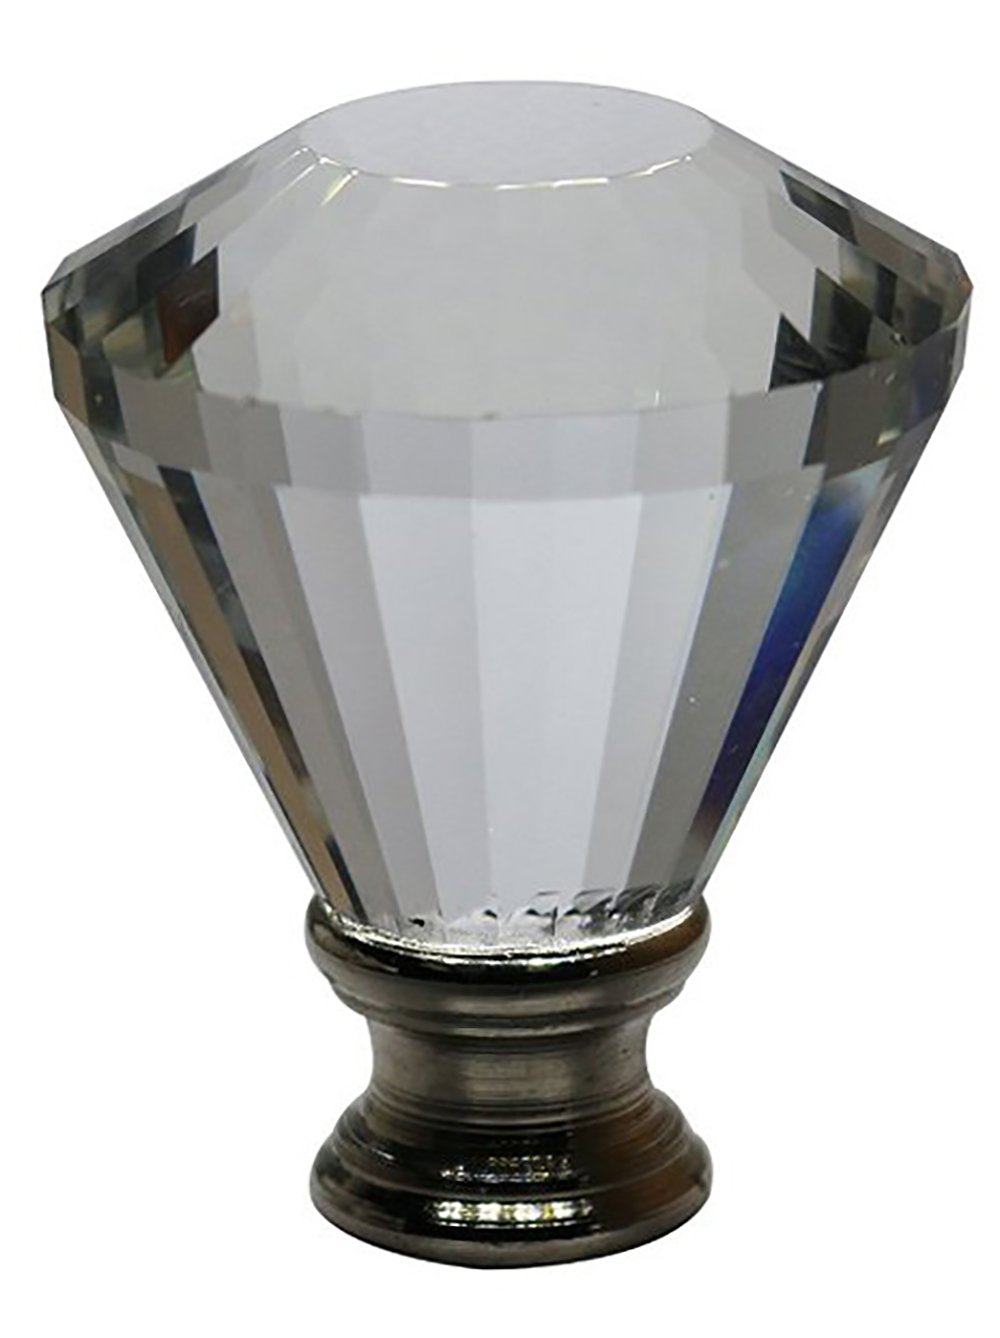 Urbanest Crystal Diana Lamp Finial, Brushed Steel, 2-inch Tall